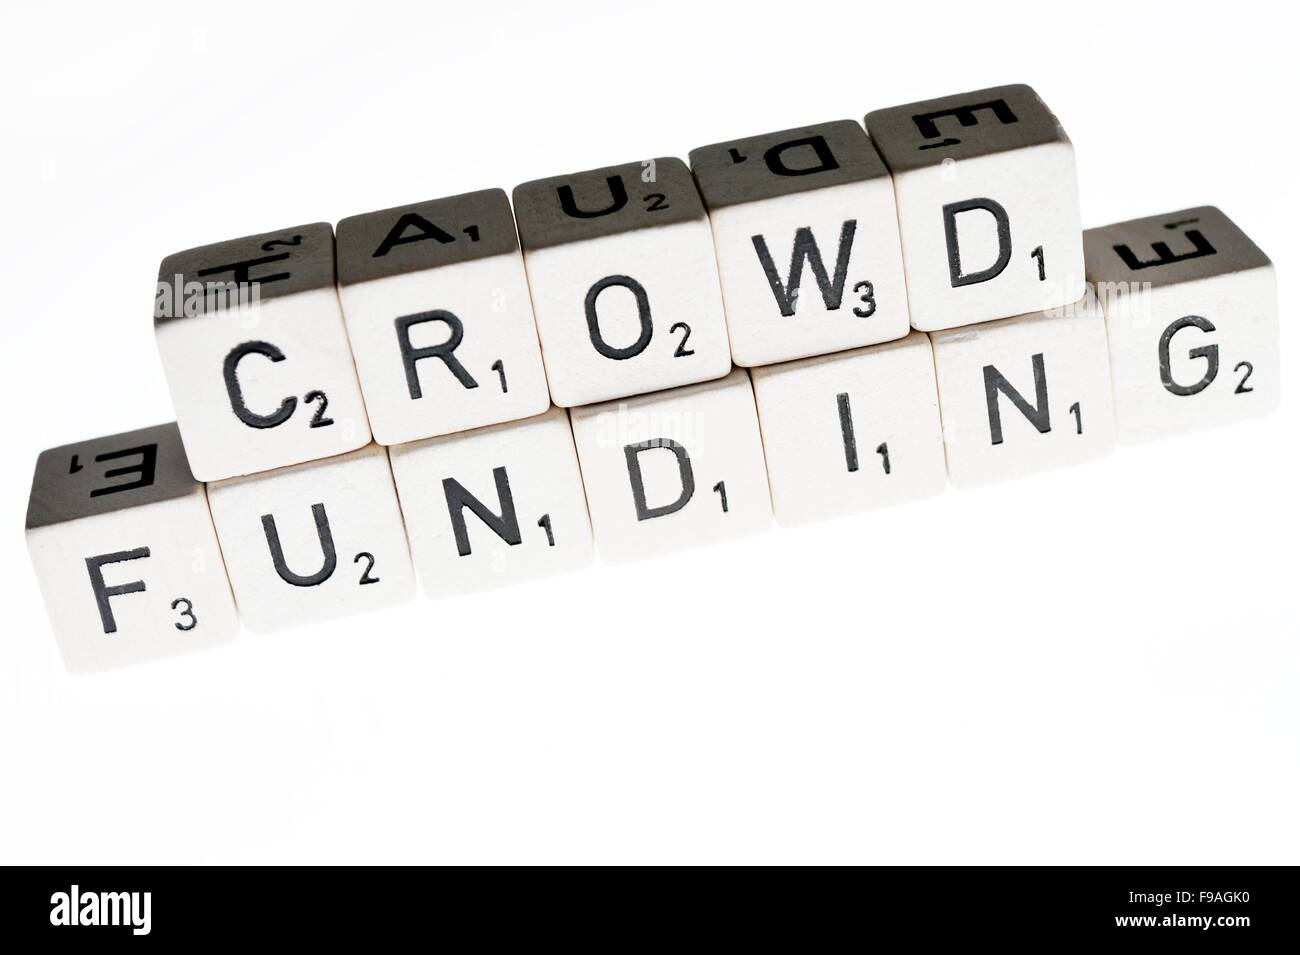 The word crowdfunding, Germany, city of Osterode, 15. December 2015. Photo: Frank May - Stock Image